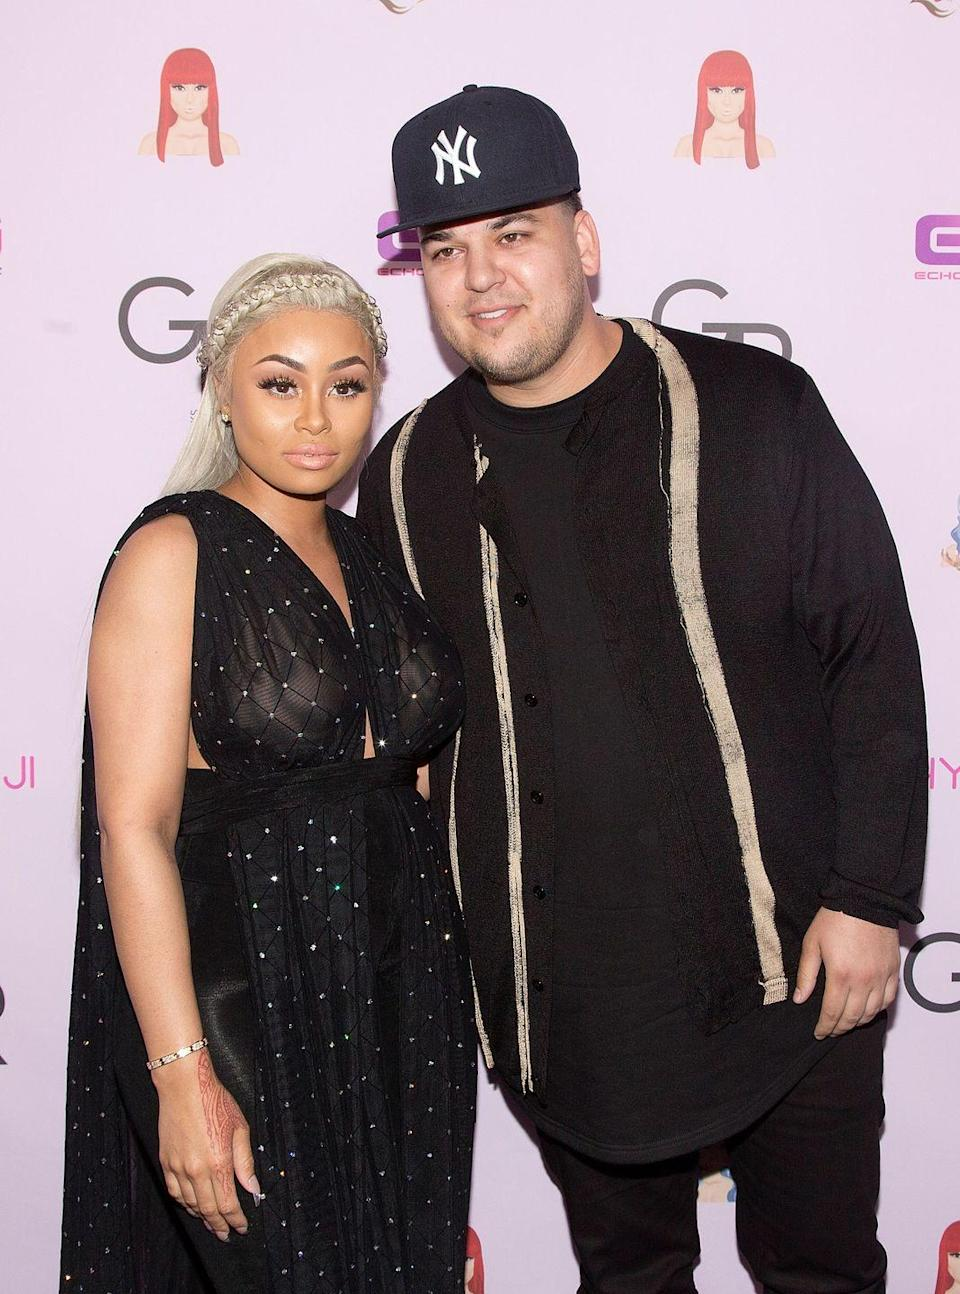 "<p>Due to the constant drama between the couple and the fact that <a href=""https://www.cosmopolitan.com/entertainment/celebs/news/a56285/rob-kardashian-blac-chyna-dating-relationship-timeline/"" rel=""nofollow noopener"" target=""_blank"" data-ylk=""slk:Rob's younger sister was dating his girlfriend's ex-partner"" class=""link rapid-noclick-resp"">Rob's younger sister was dating his girlfriend's ex-partner</a>, fans never really signed on to Blac Chyna and Rob Kardashian's relationship.</p>"